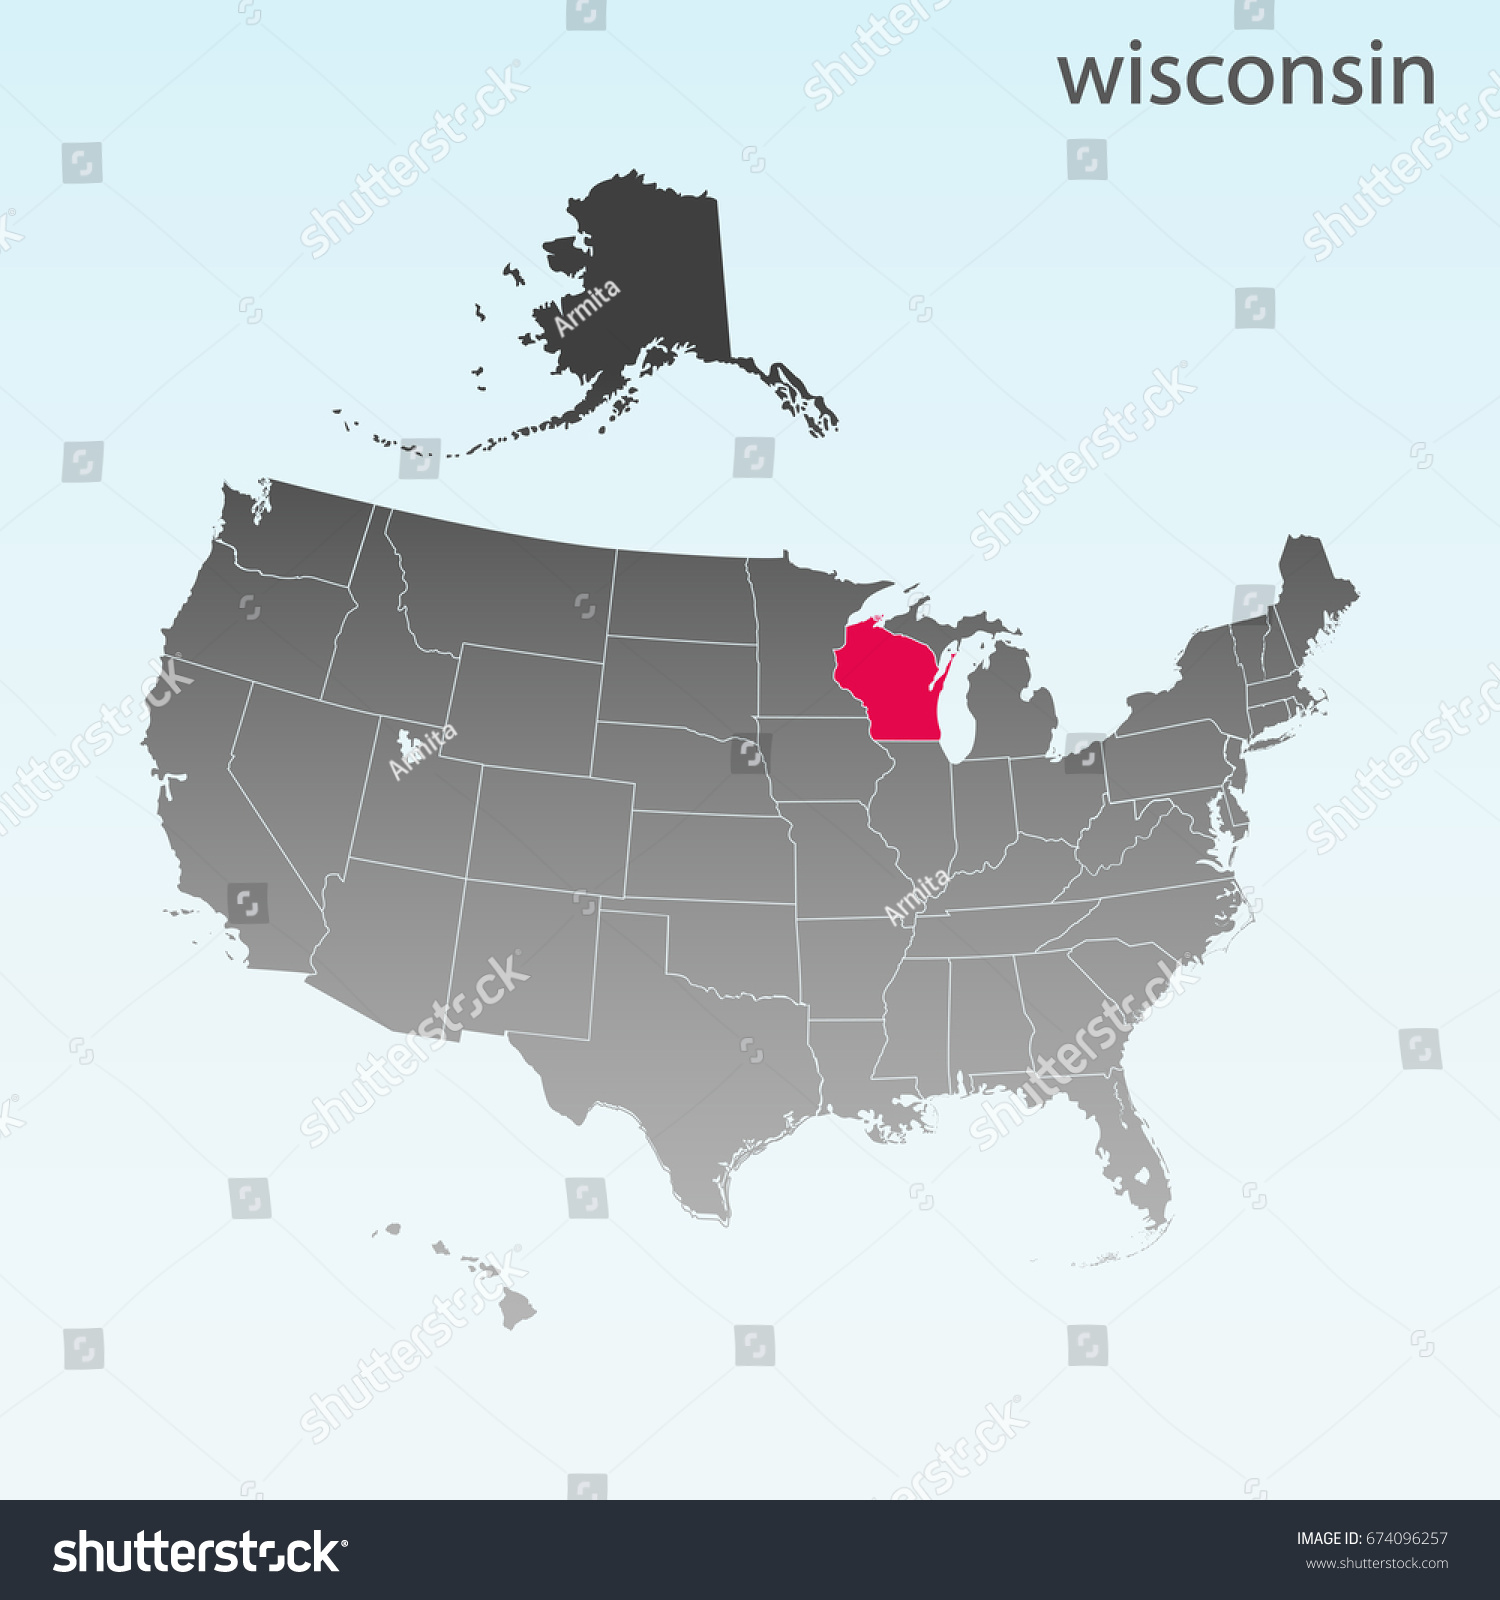 Usa State Wisconsin Map Stock Vector Shutterstock - Wisconsin on map of usa